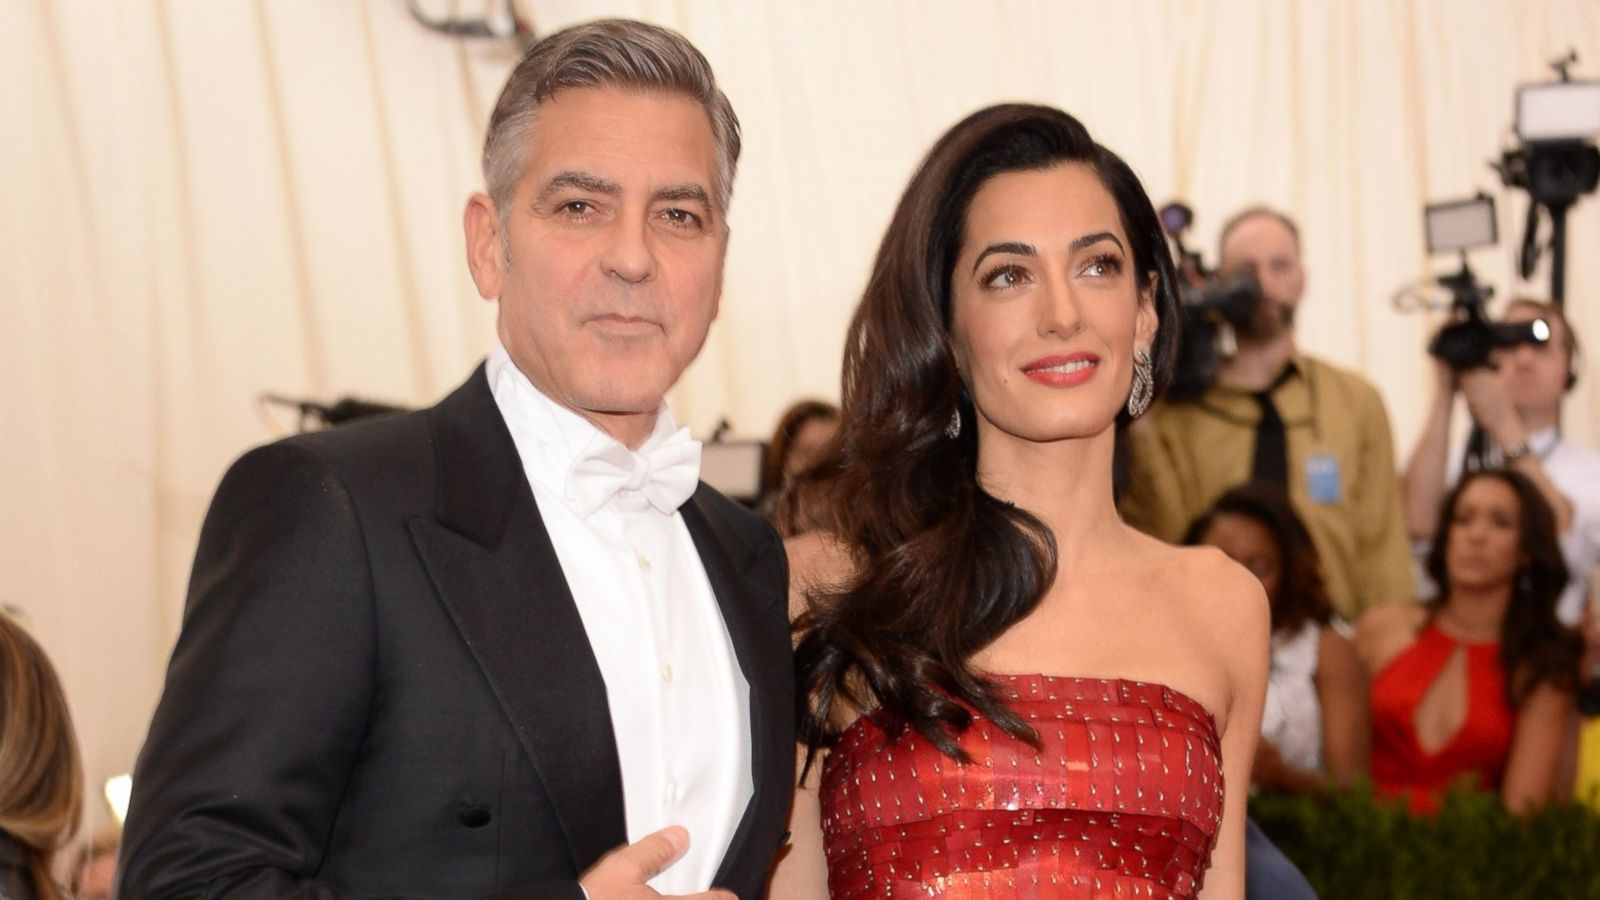 George Clooney admitted that his wife is smarter than him